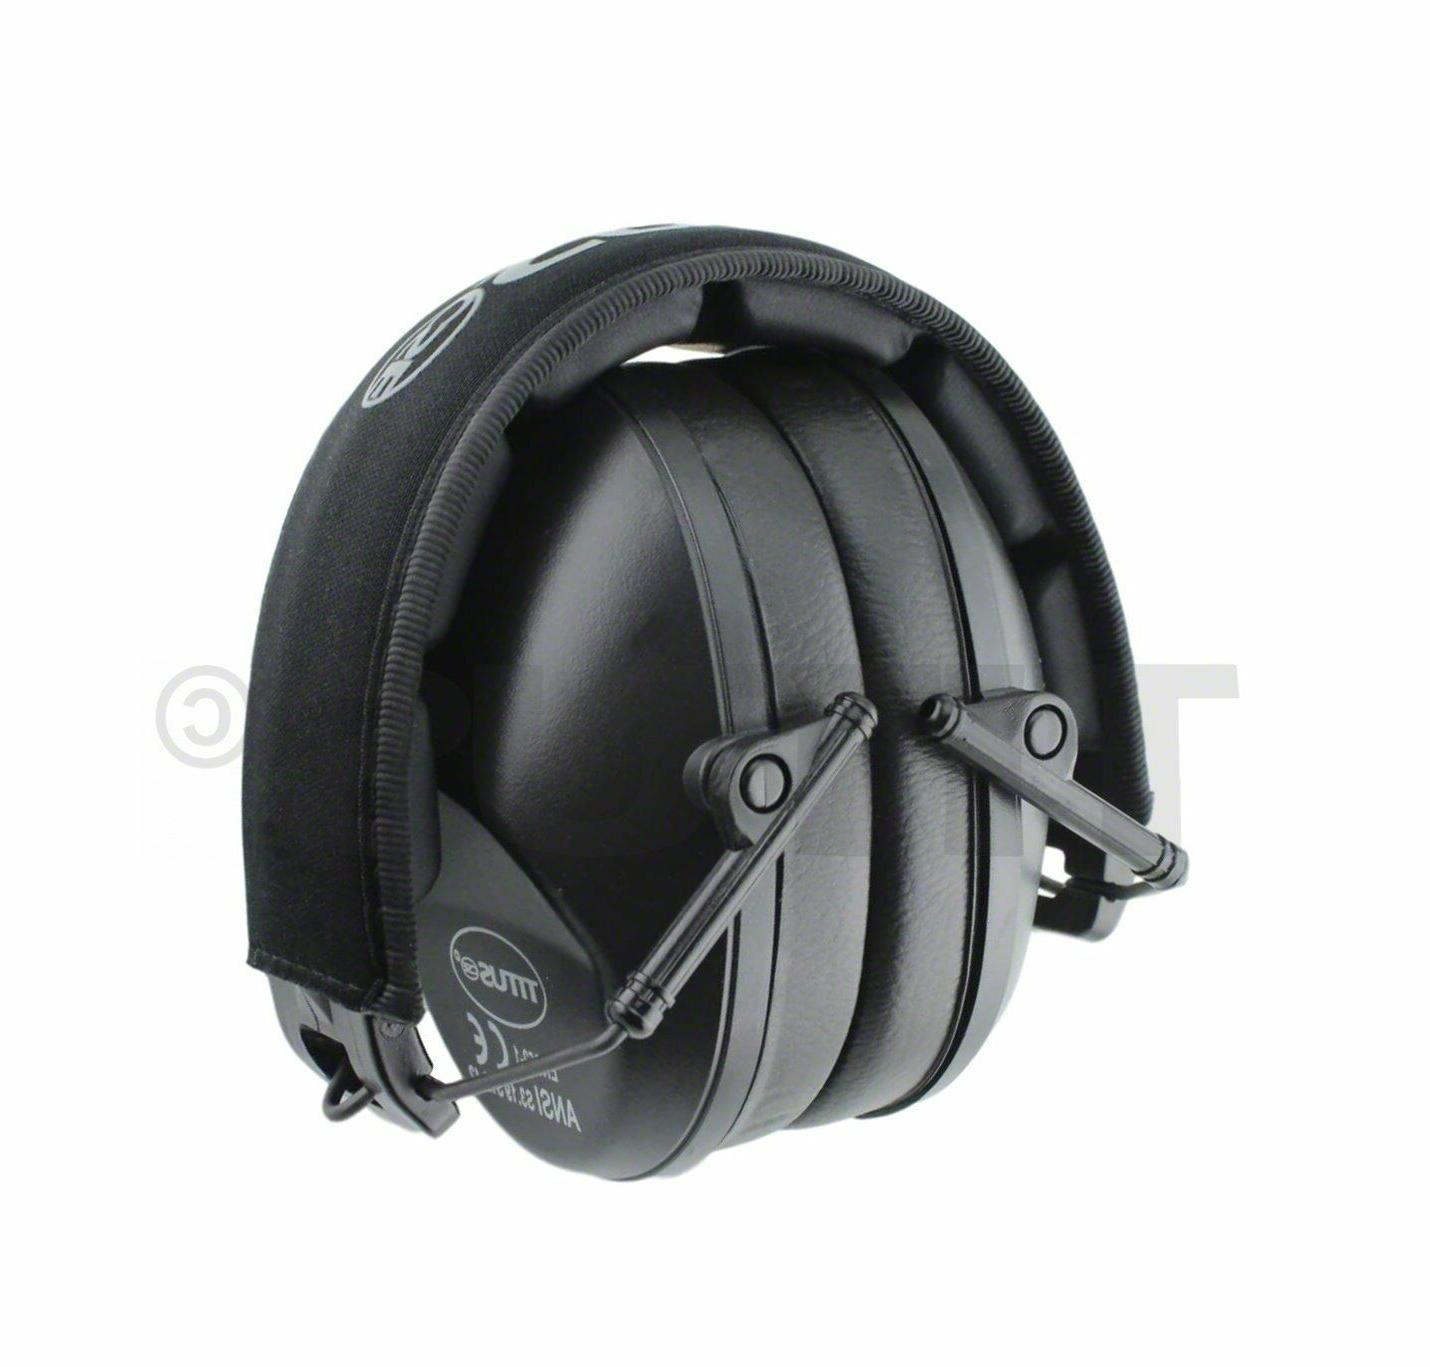 Low Black Ear Muffs